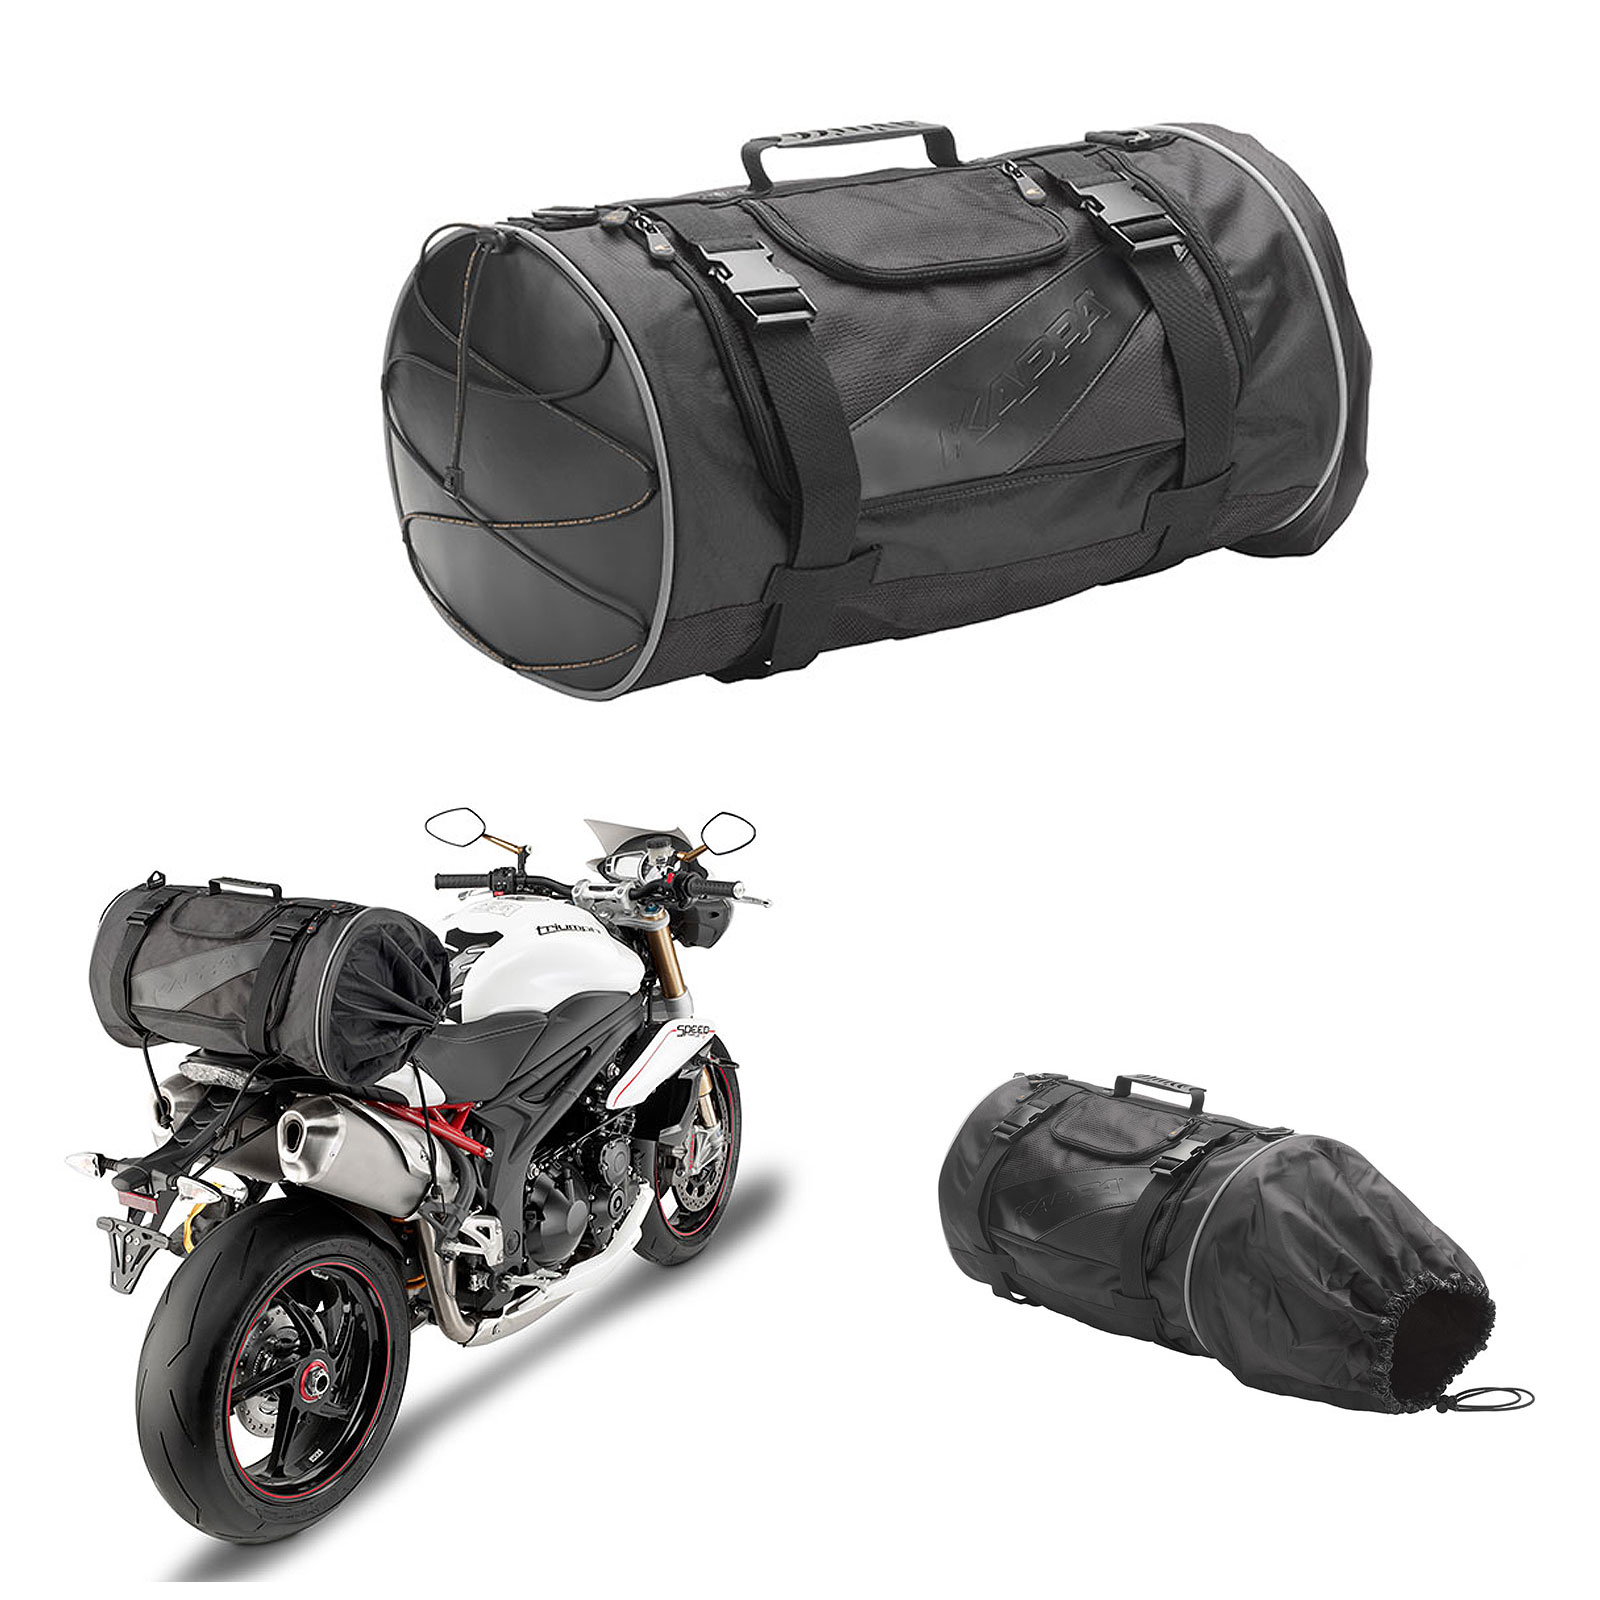 12d3a18a3bd Details about Kappa By Givi Racer Motorcycle Luggage Tail Bag Black 37 Litre